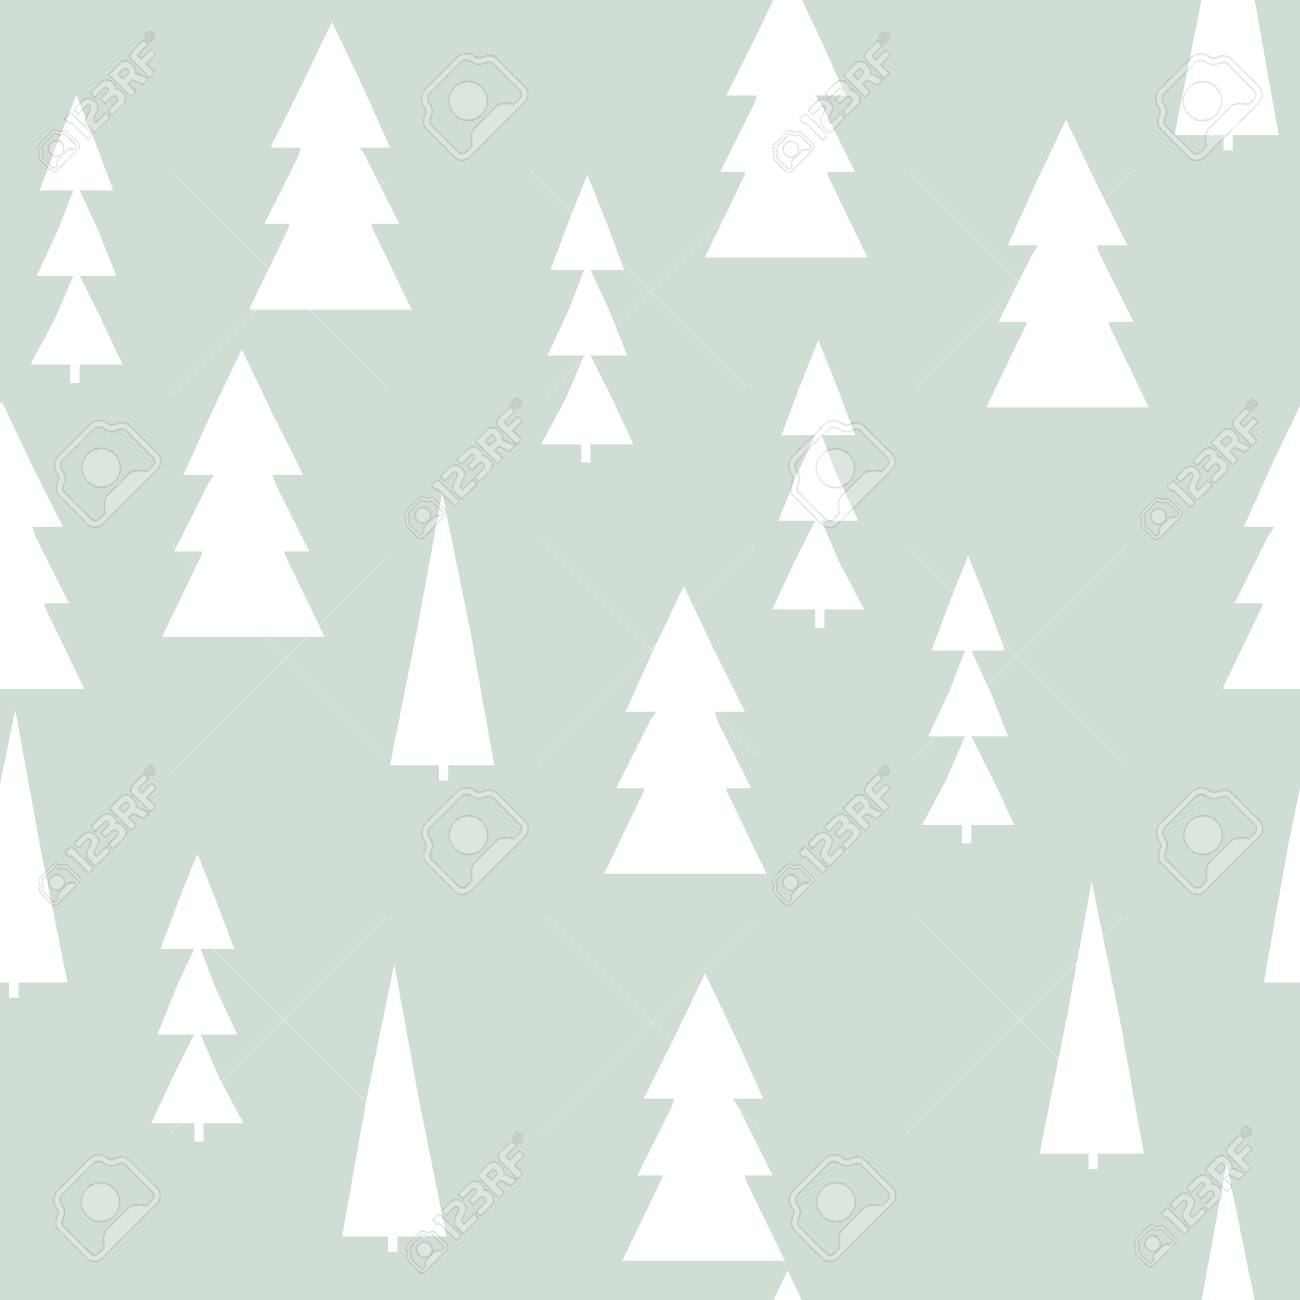 Christmas Trees Background Clipart.Christmas Pattern With Trees Simple Winter Christmas Background